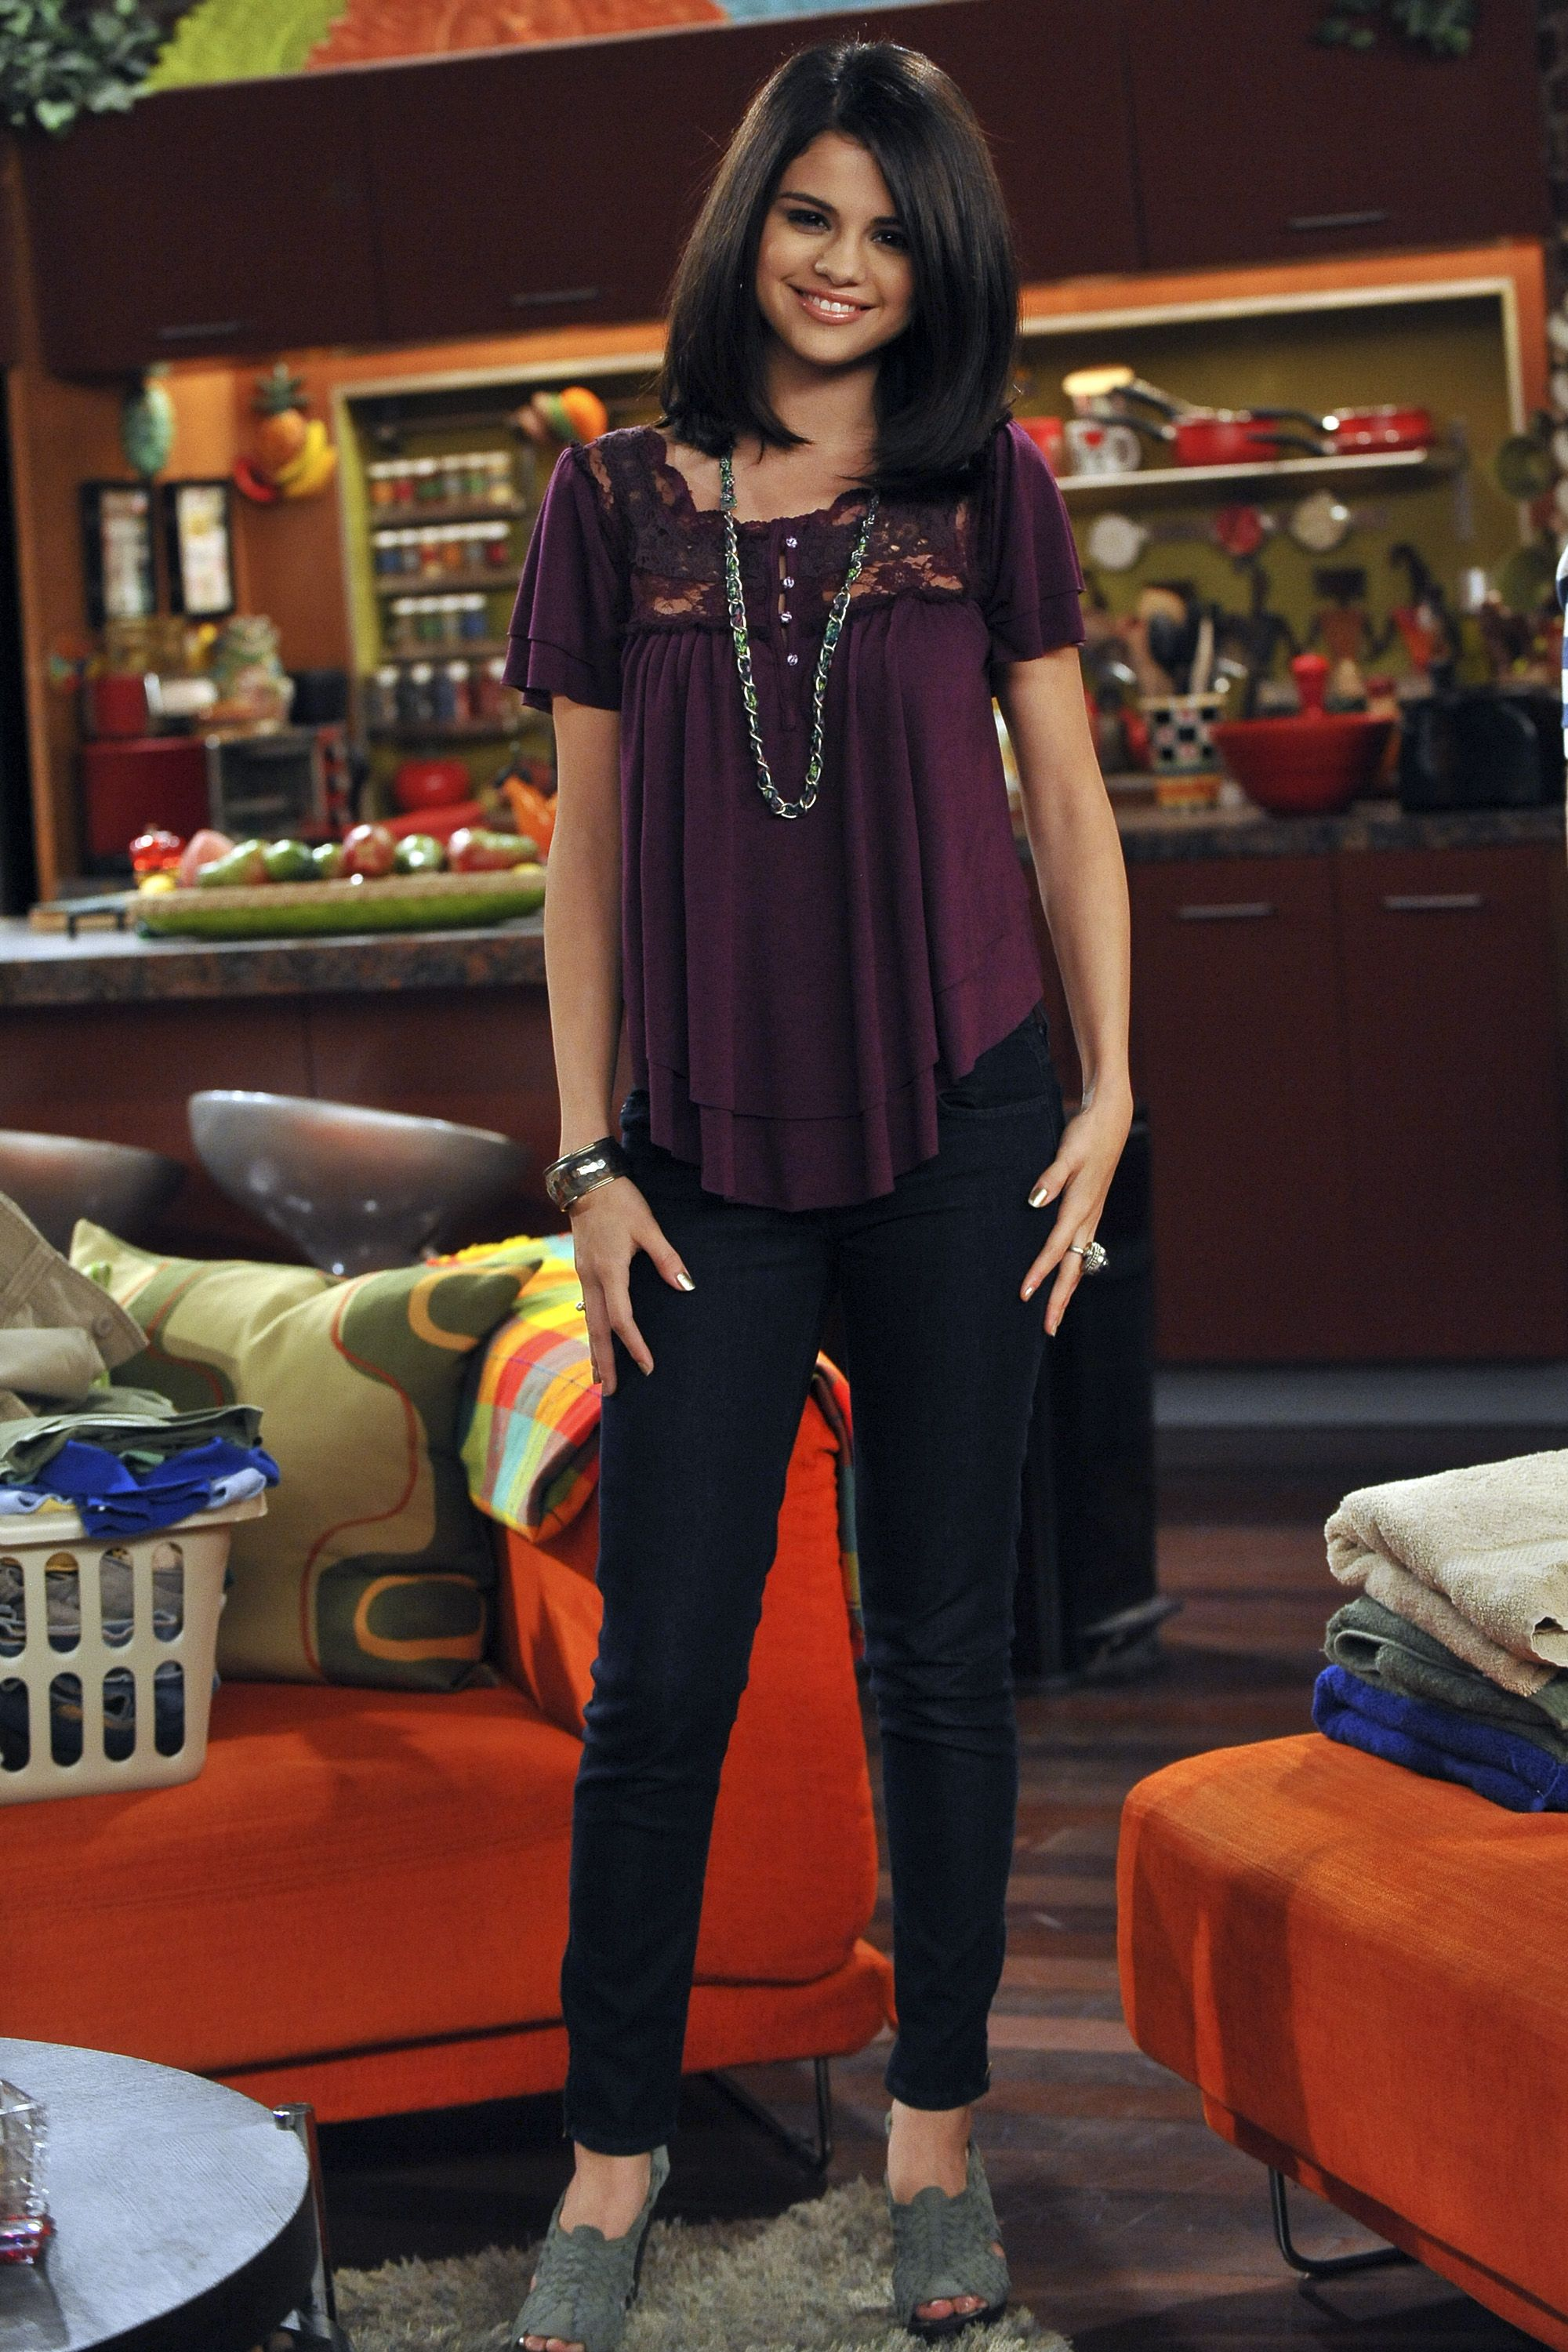 wizards of waverly place fashion evolution | pinterest | evolution